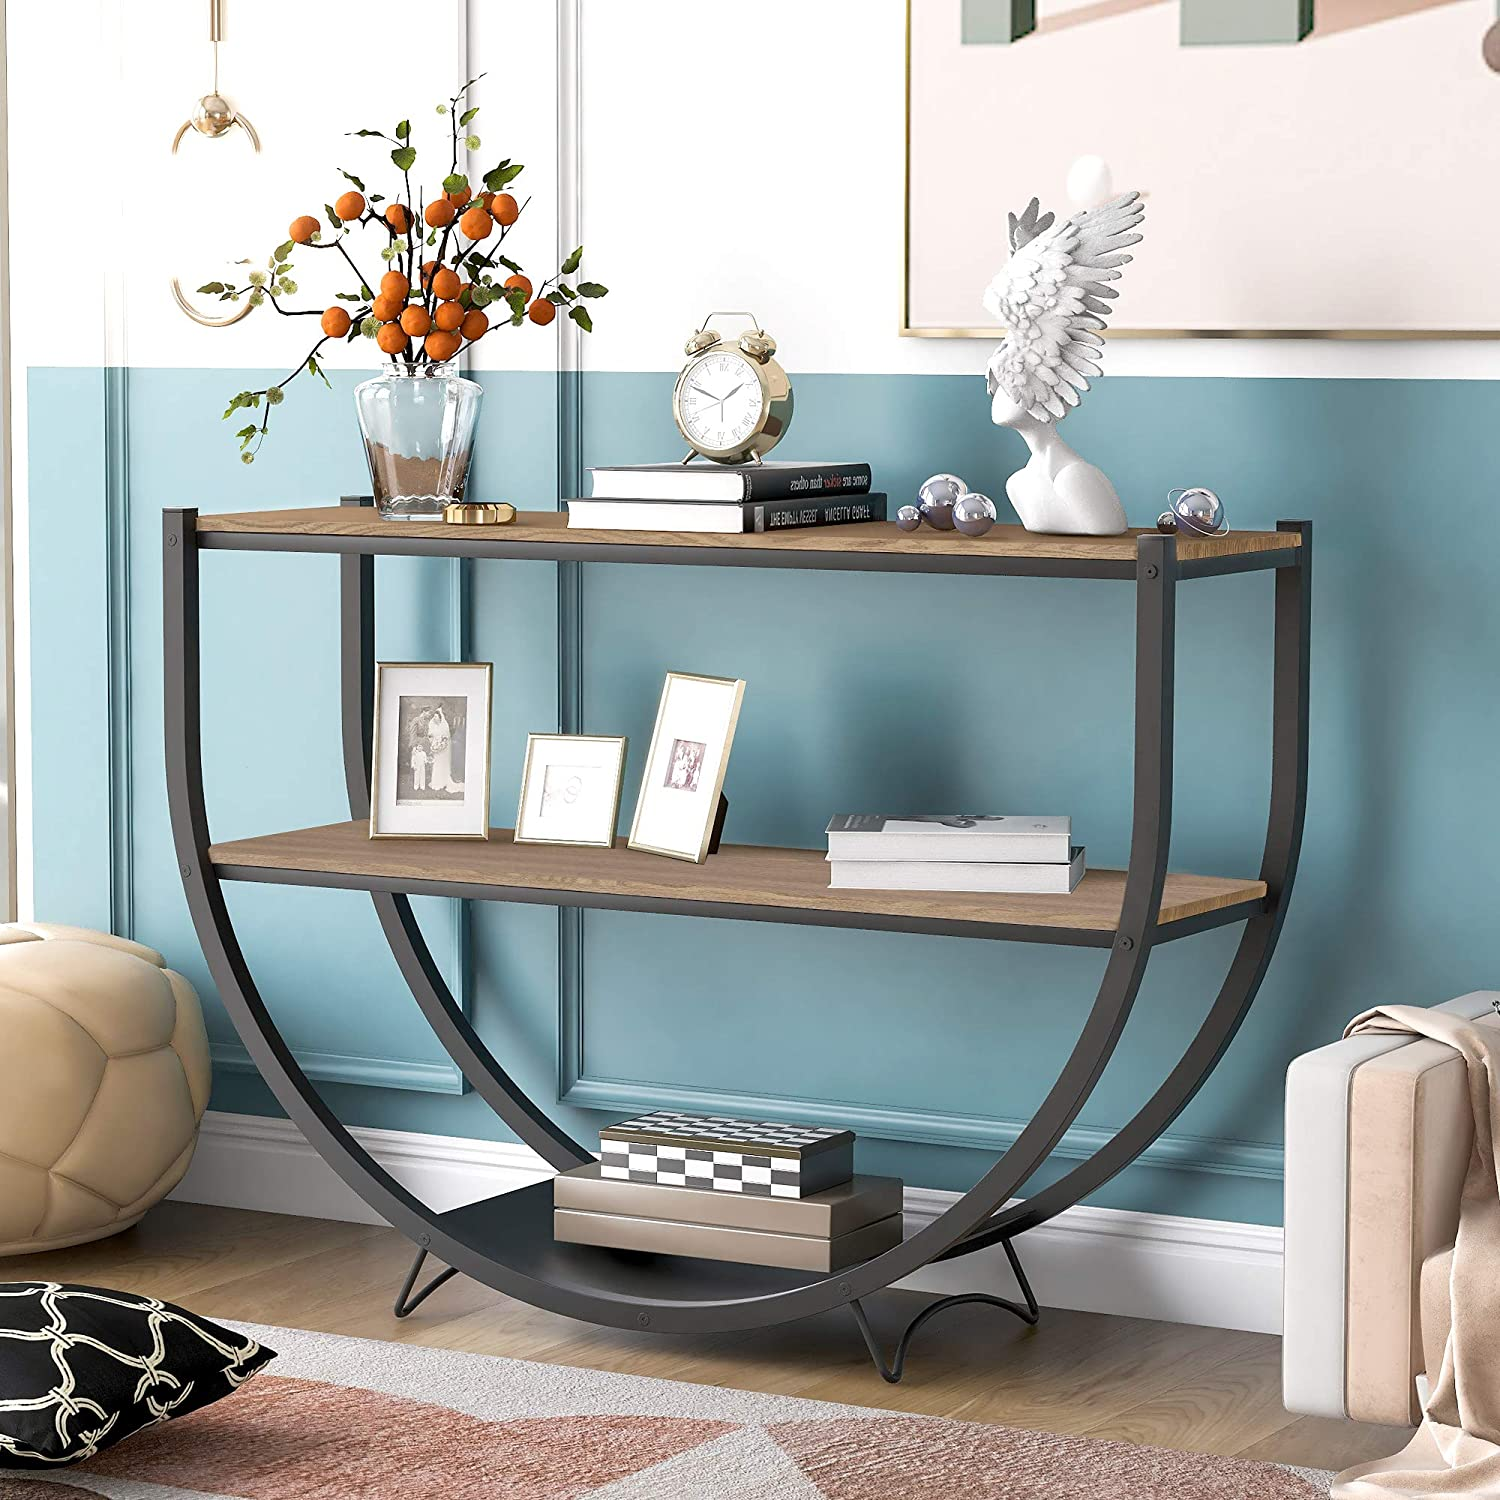 Console Table Living Room Many Outlet ☆ Free Shipping popular brands Rustic Furniture Decoration Industrial